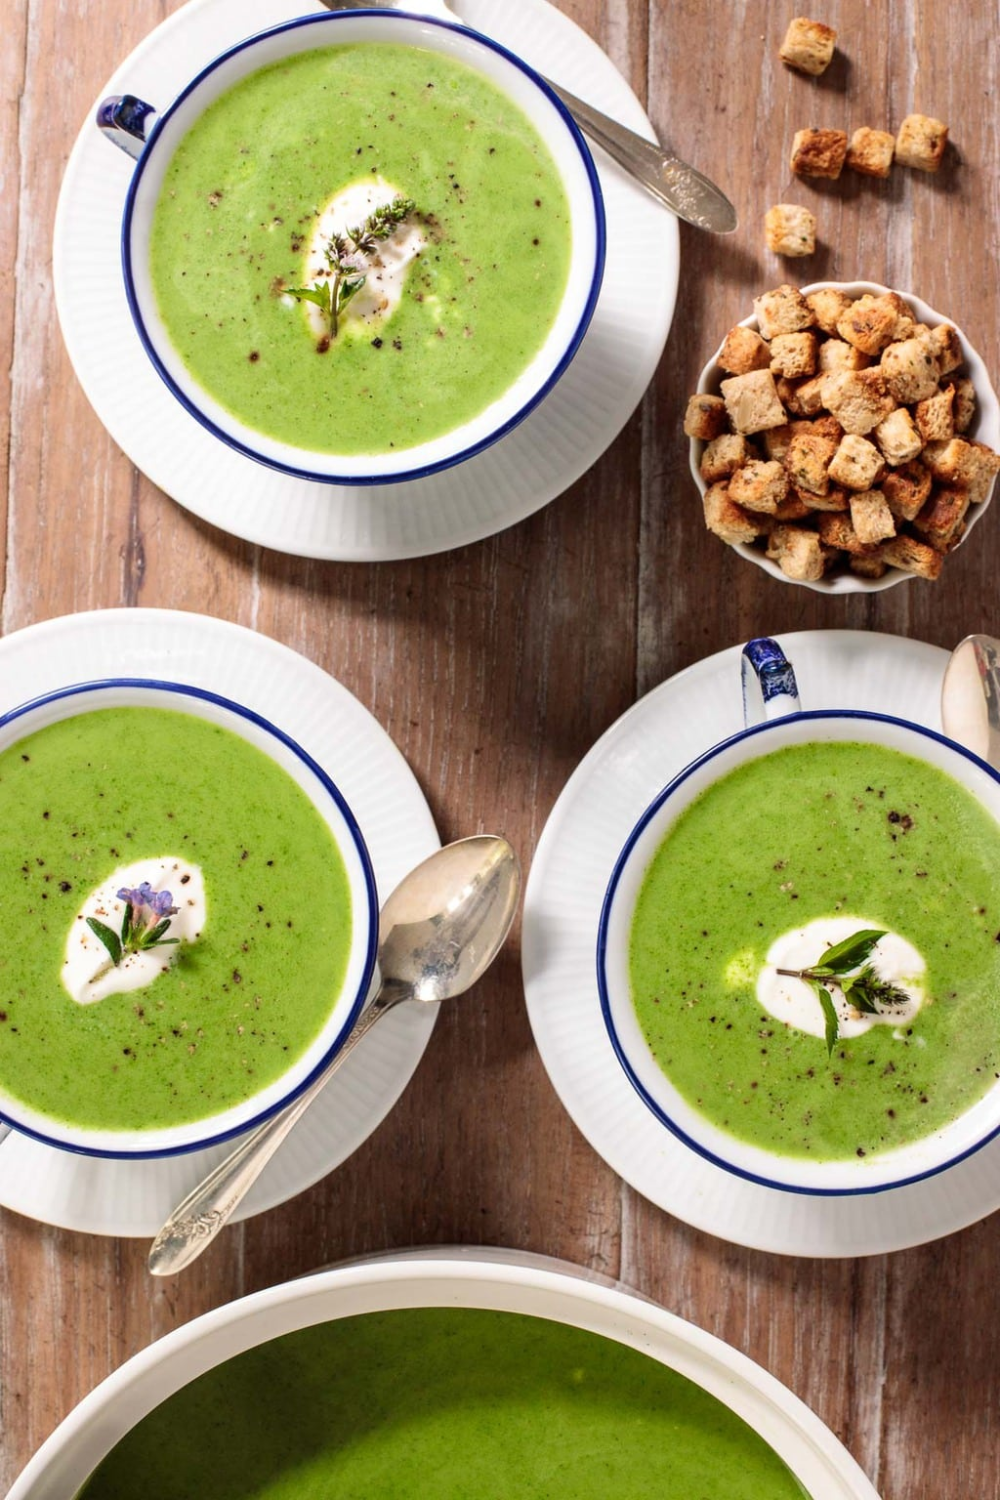 Healthy, delicious and vibrantly green, this creamy, Ballymaloe Fresh Spinach Soup (with no cream) comes together in less than an hour and always brings rave reviews! #spinachsoup, #easyspinachsoup, #freshspinachsoup #stpatricksday